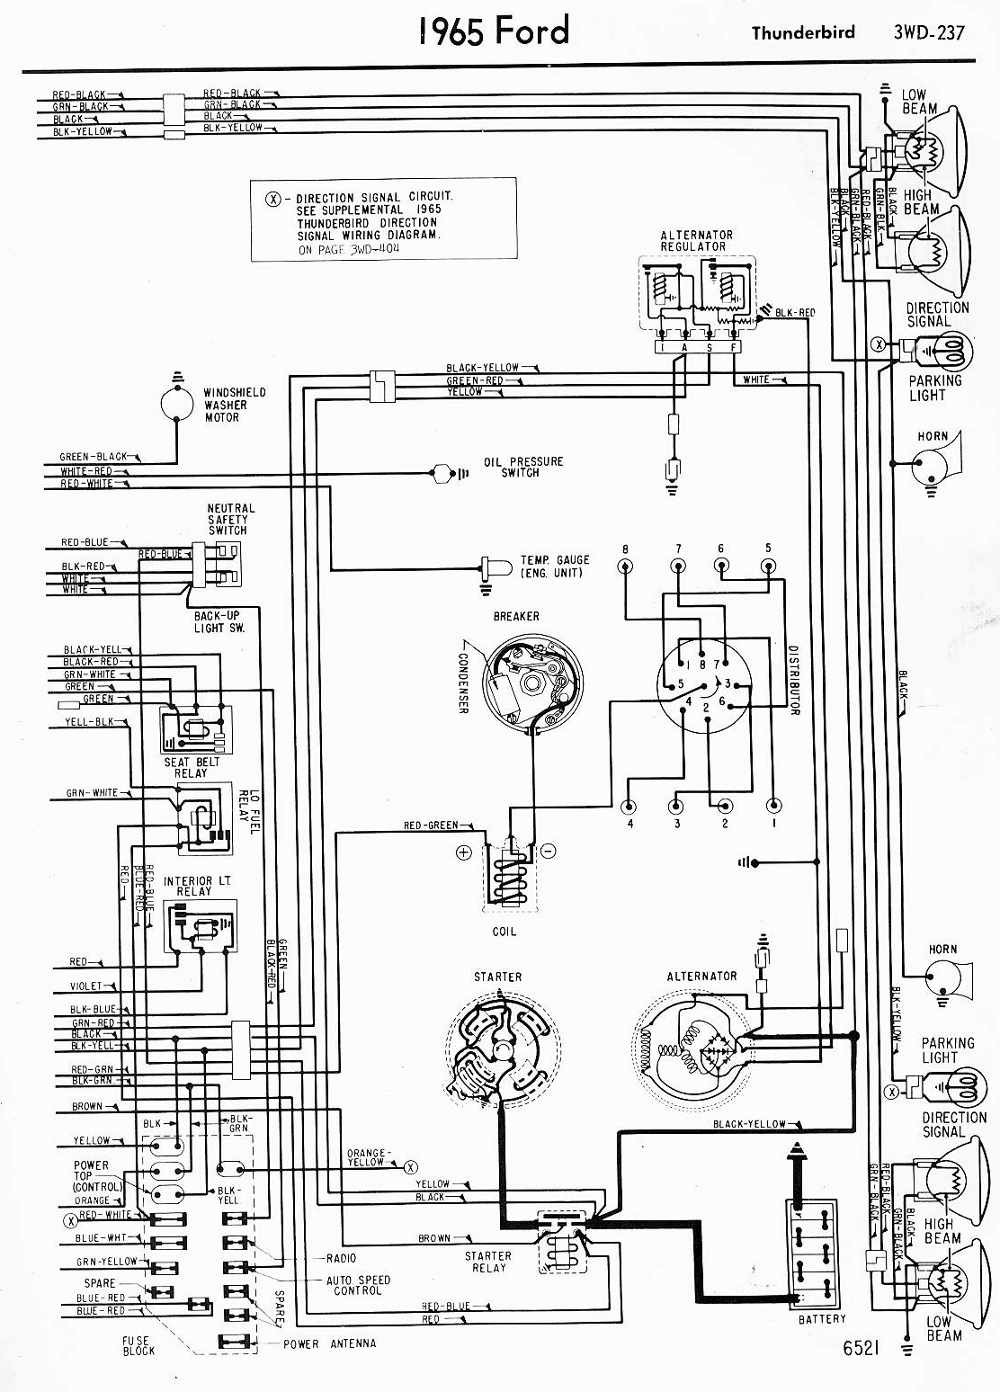 1968 Mustang Alternator Wiring Diagram - Wiring Diagram